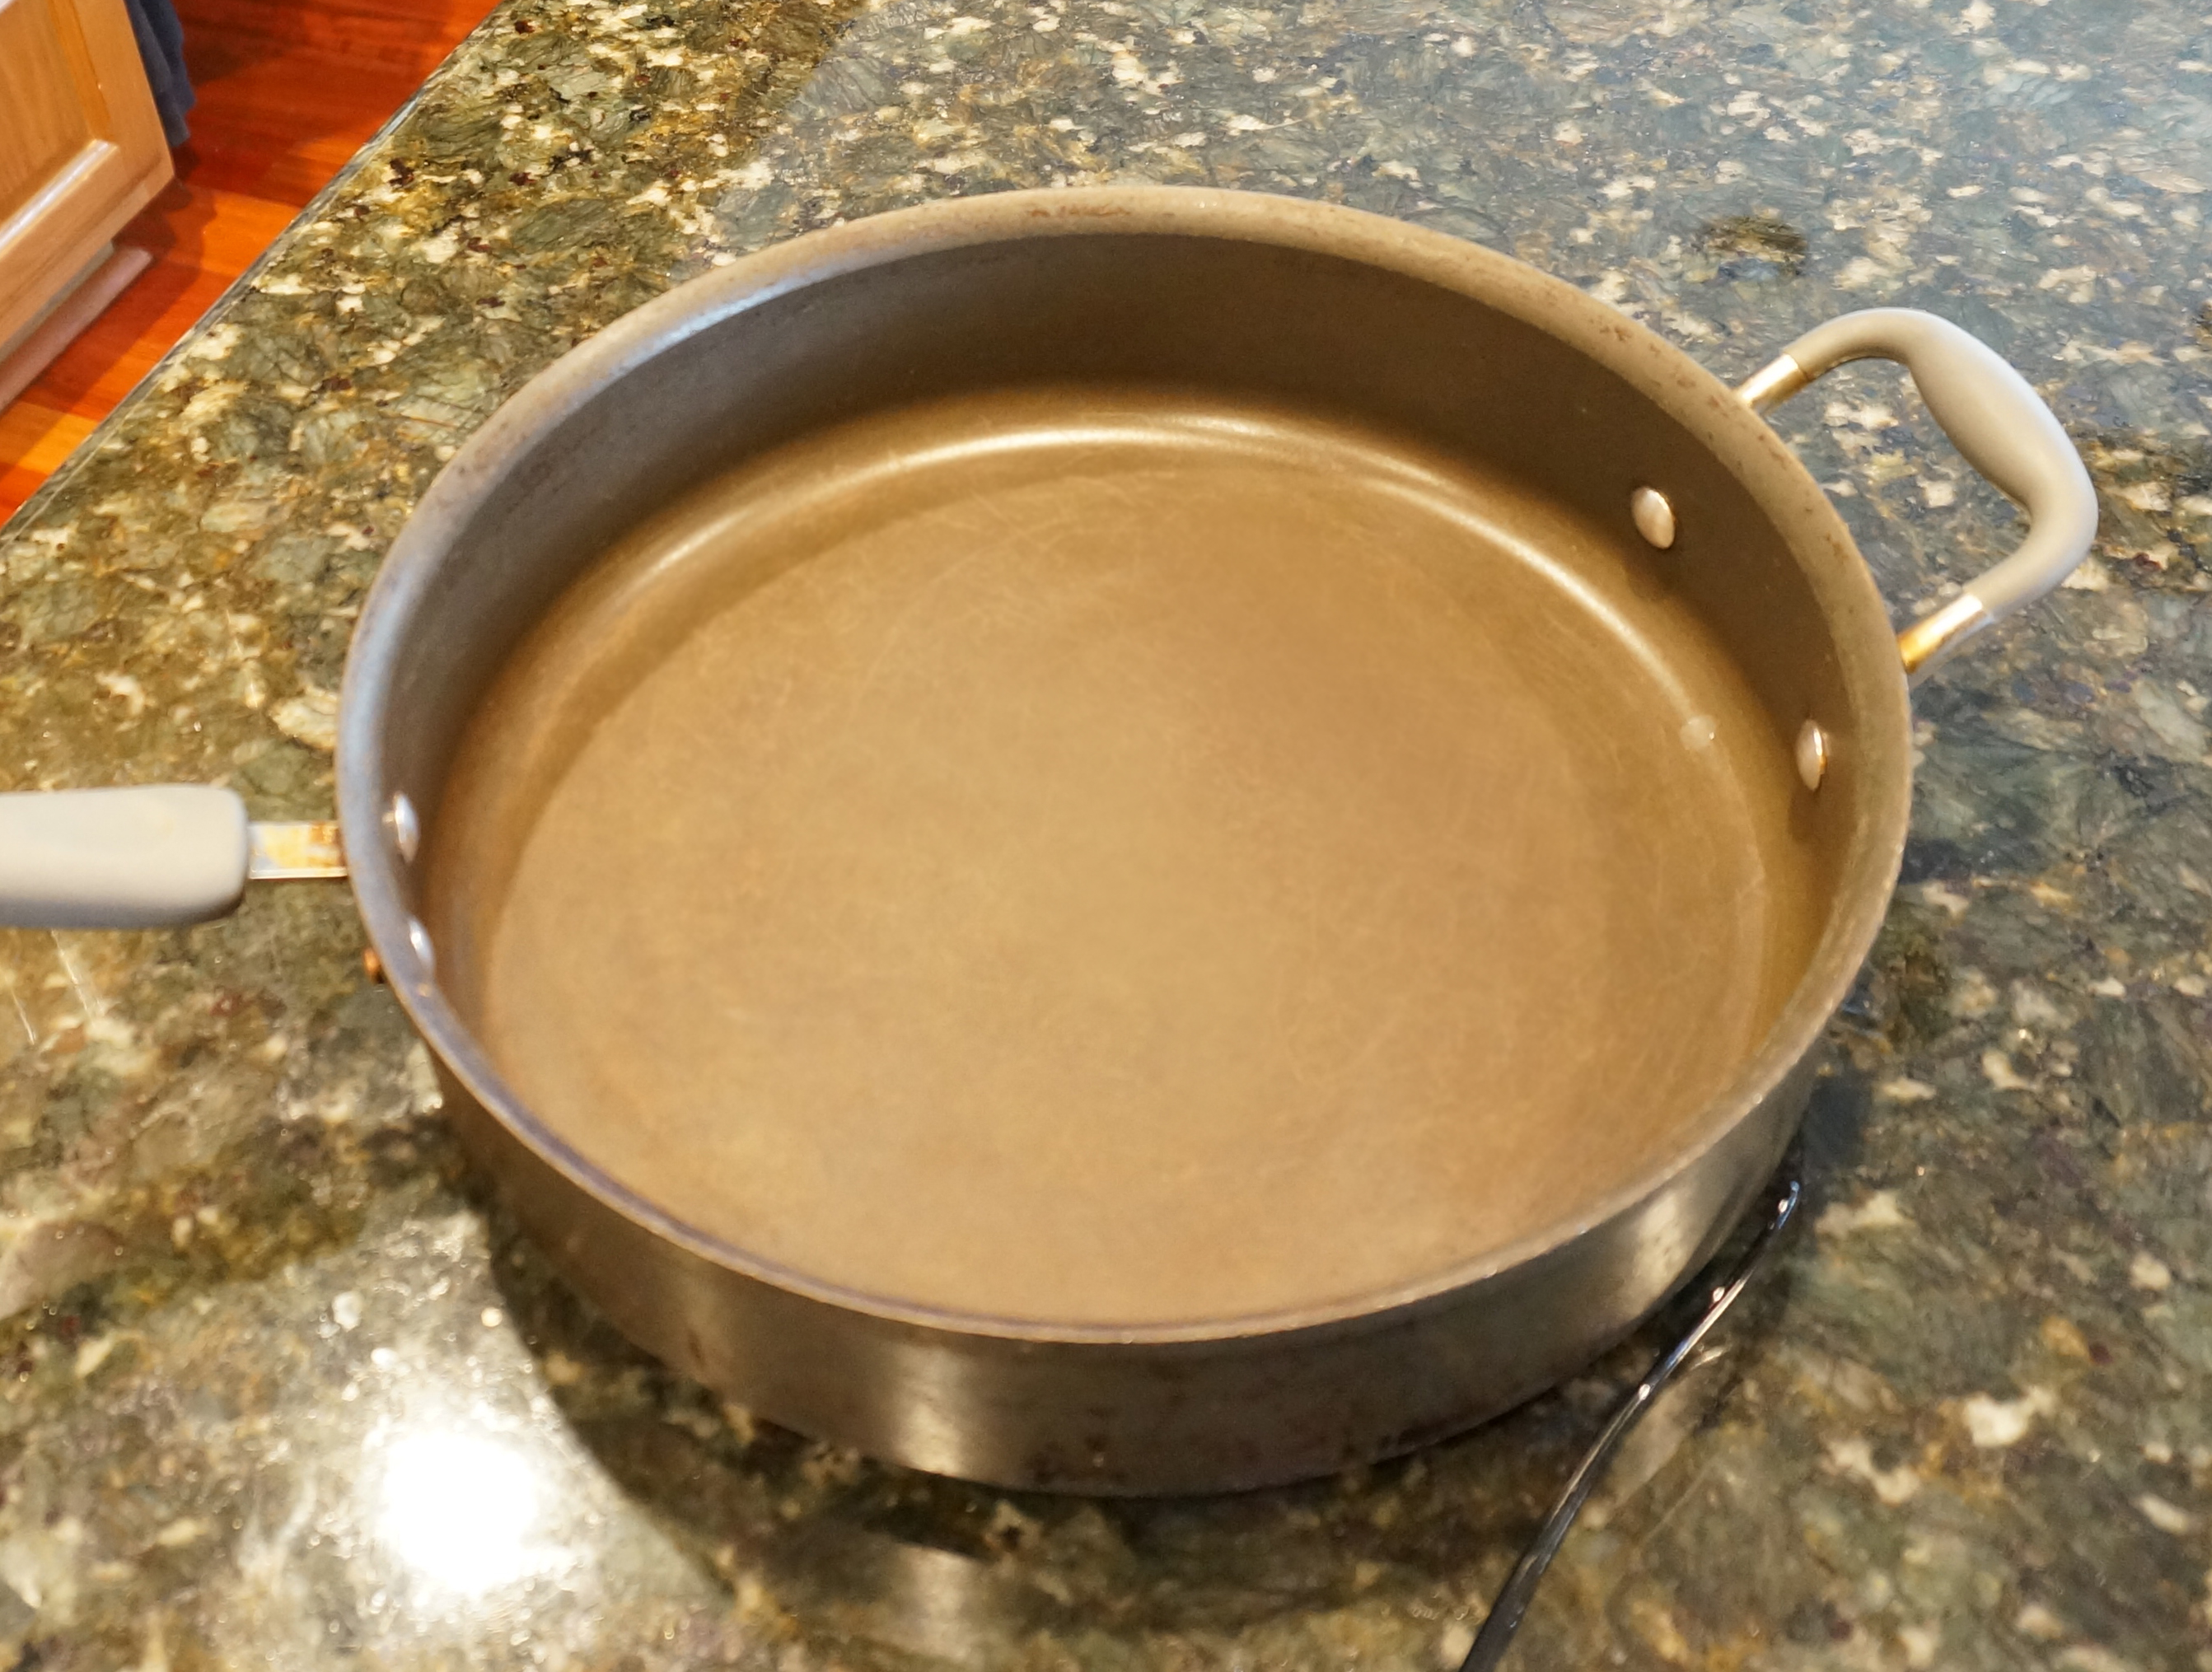 how to clean a burned non stick pan